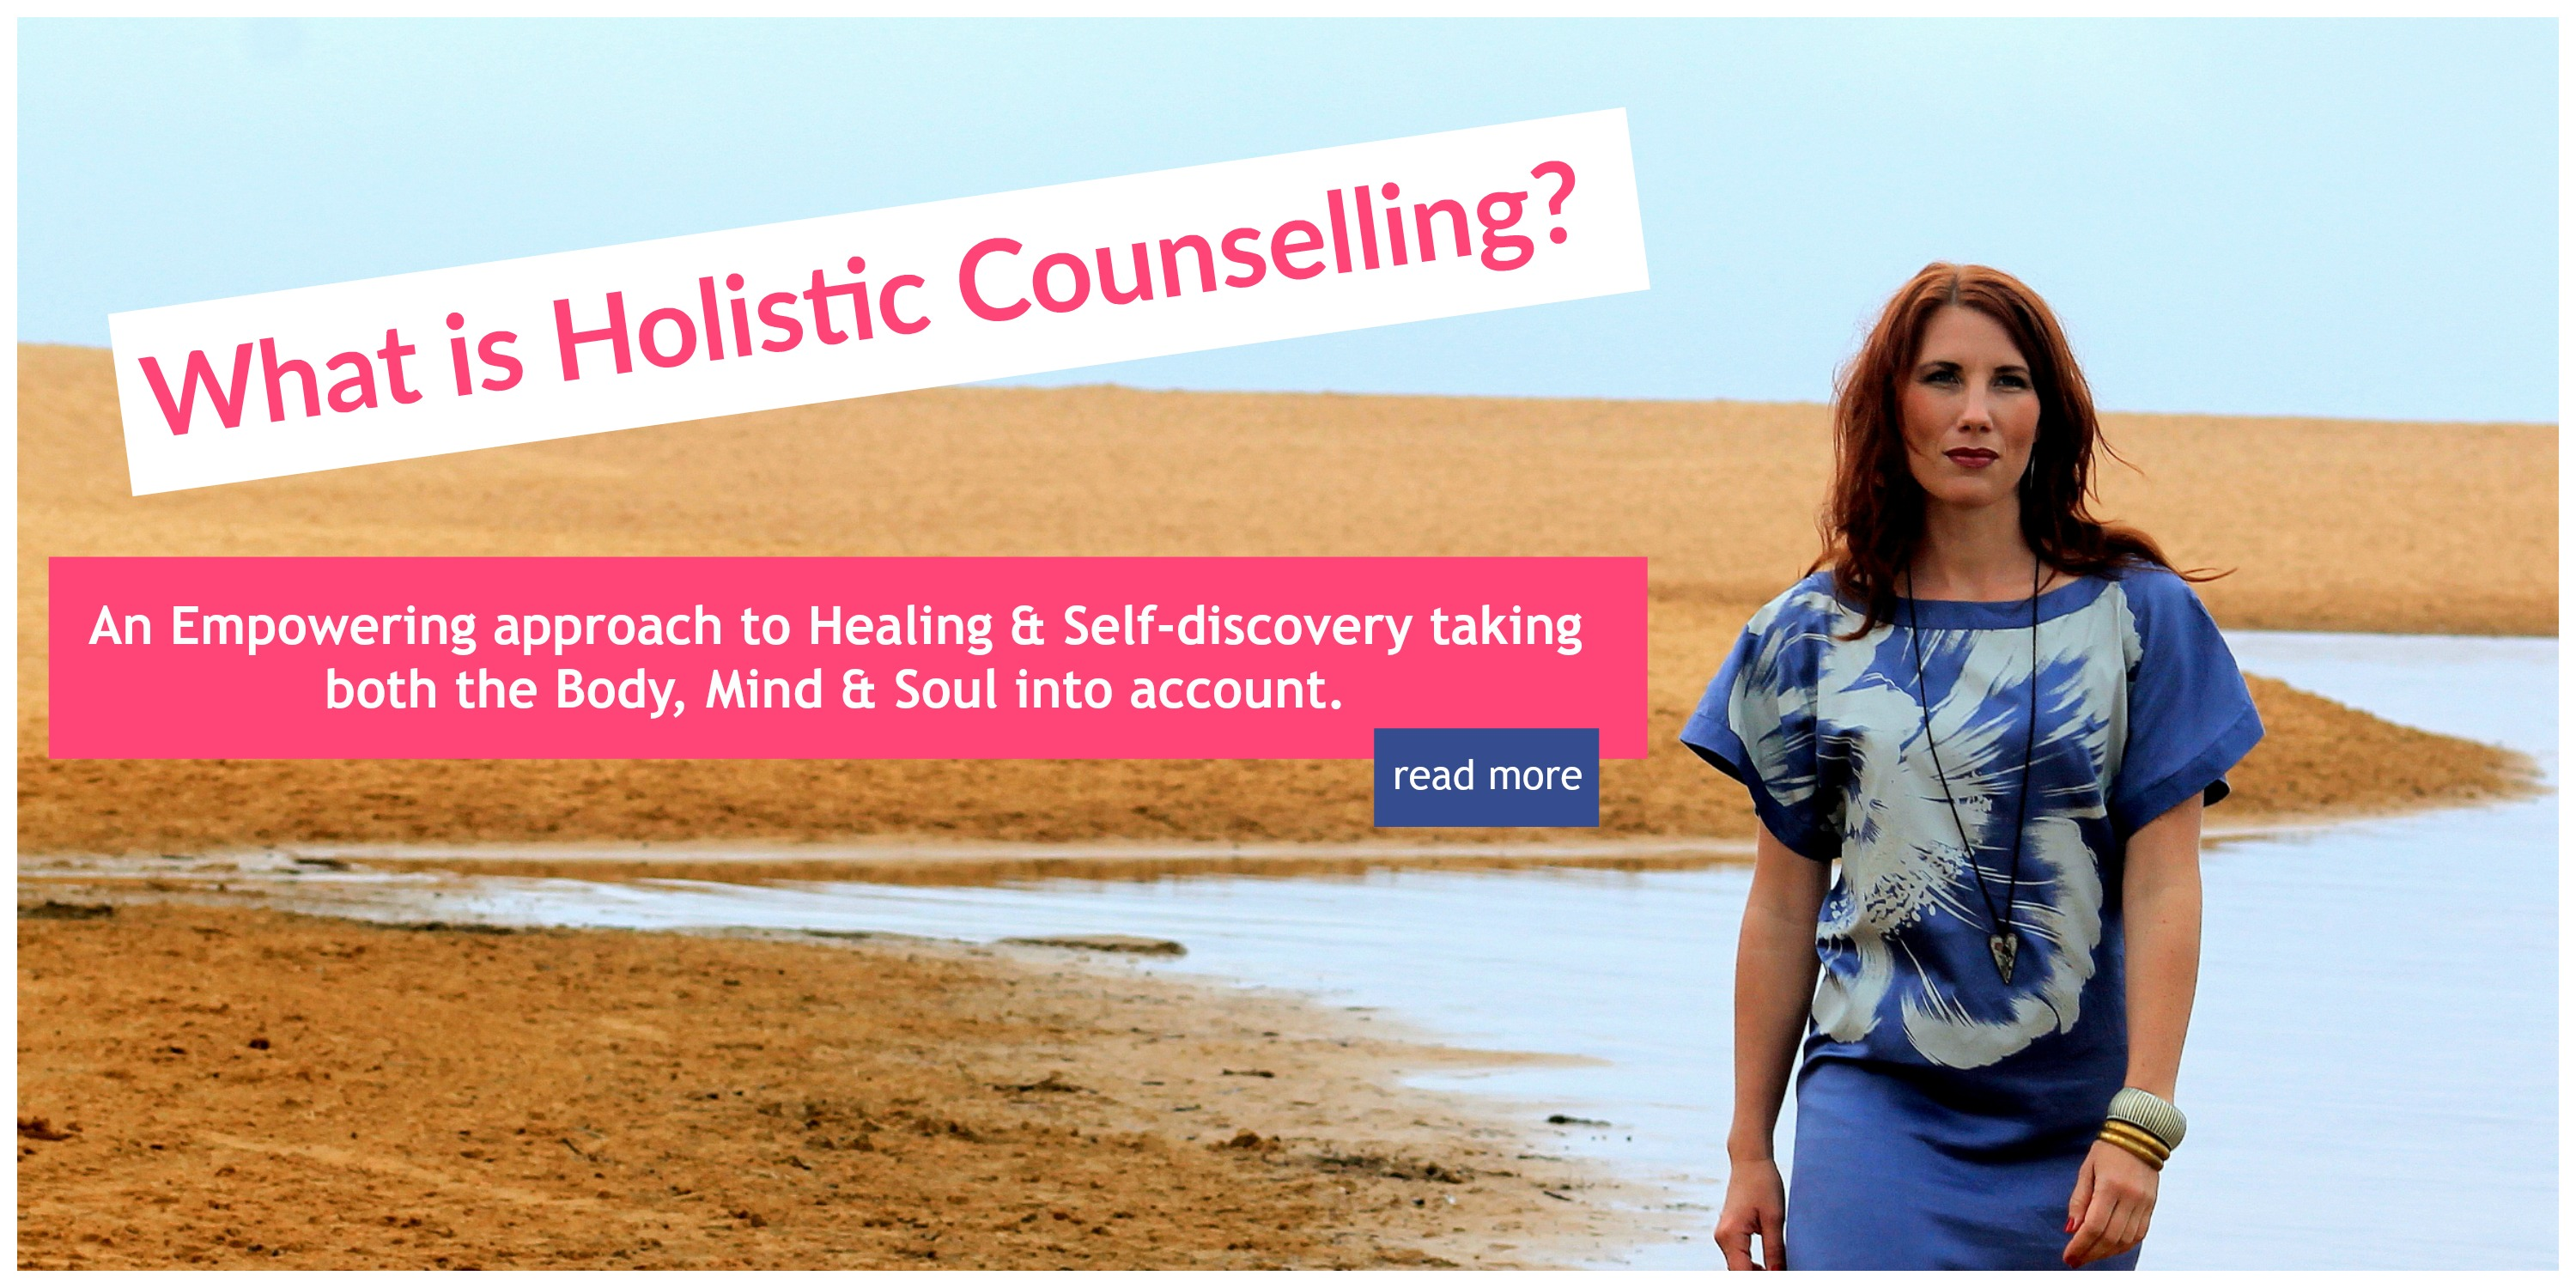 What is Holistic Counselling? SML